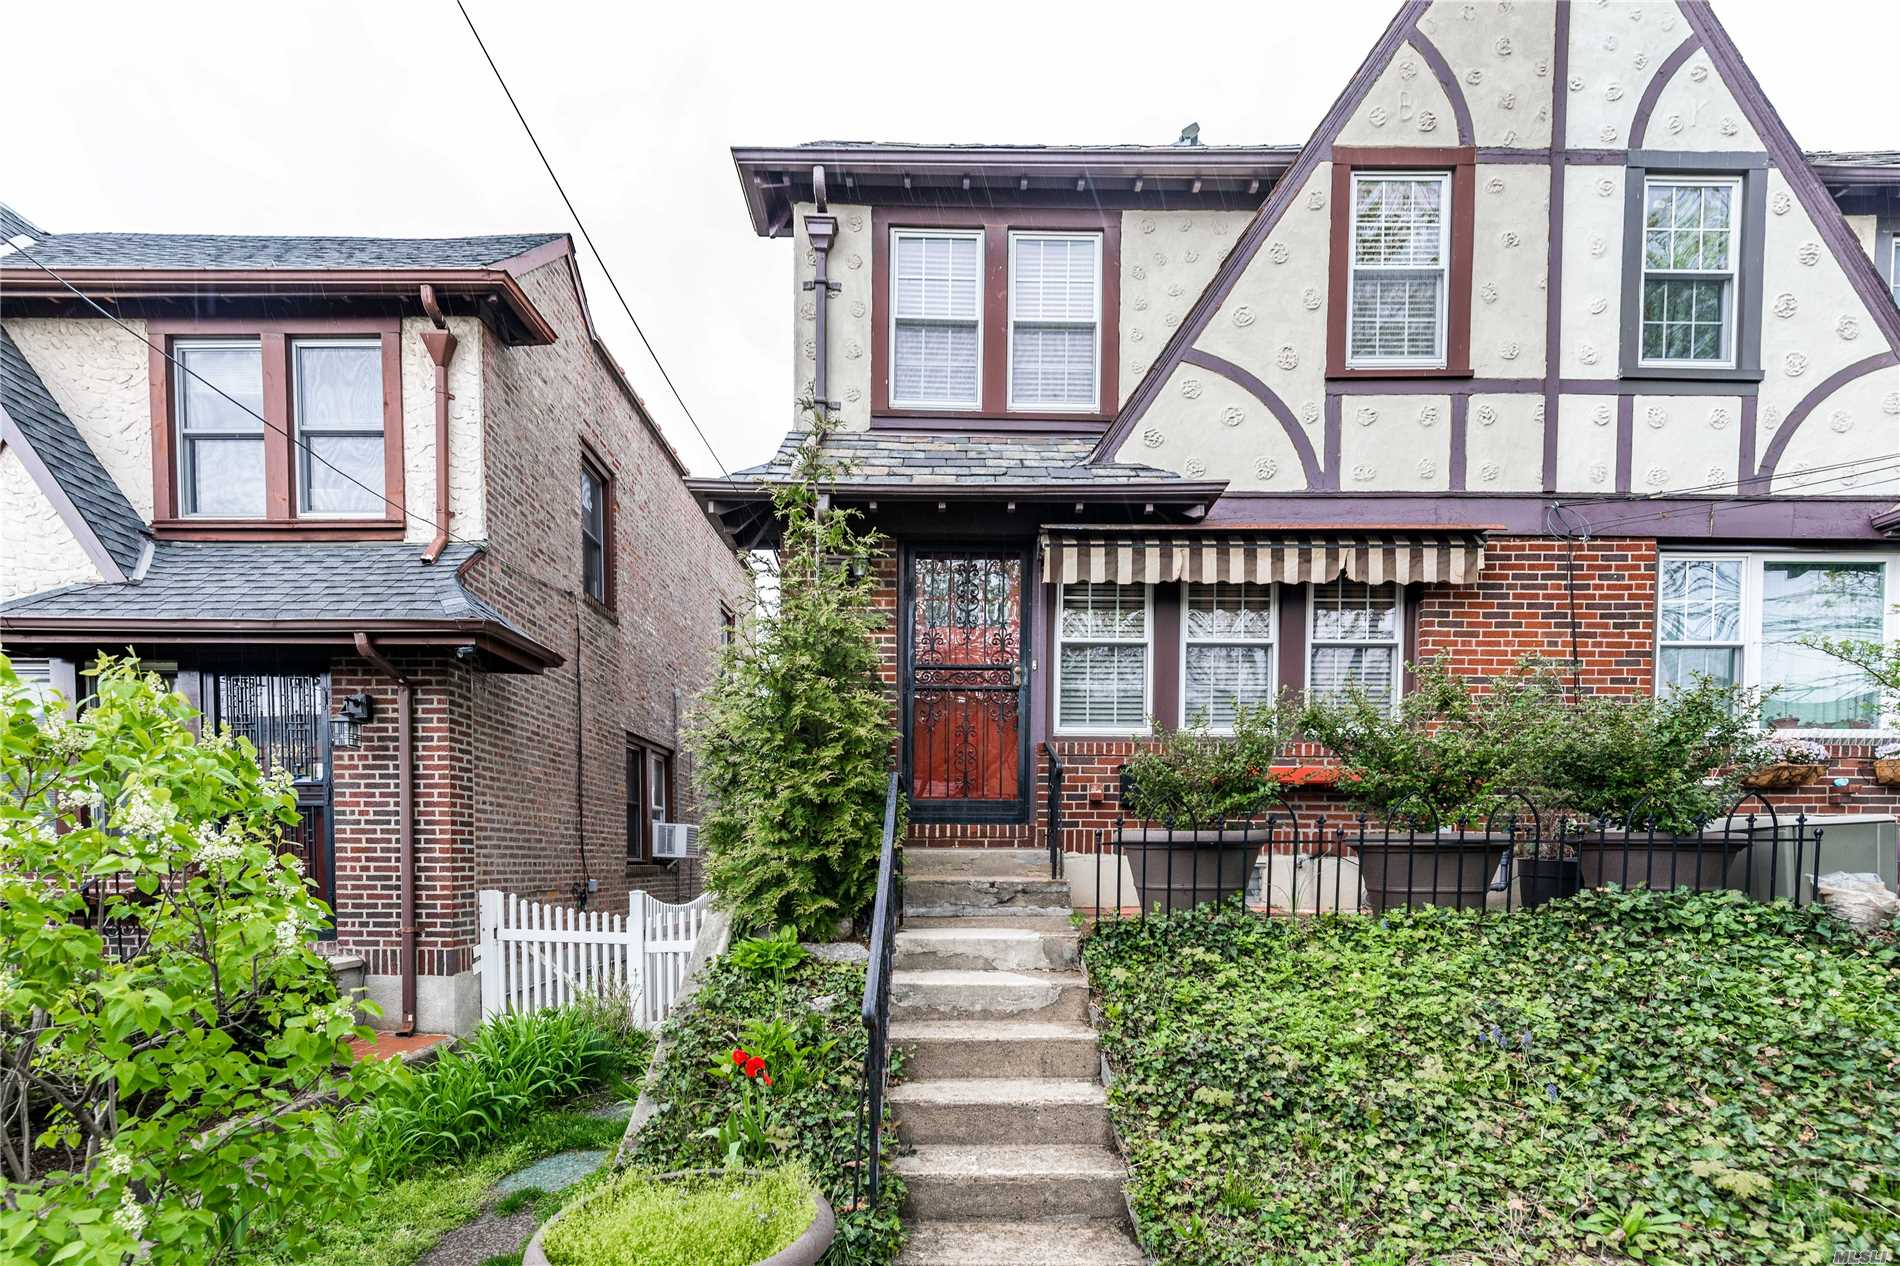 Semi-Detached Single Family Home For Sale In Forest Hills. Shows Beautifully With Designer Touches Throughout. Newly Finished Flooring, Open Concept On First Floor, Private Yard With 2 Car Detached Garage. Convenient To Subway And Shopping.